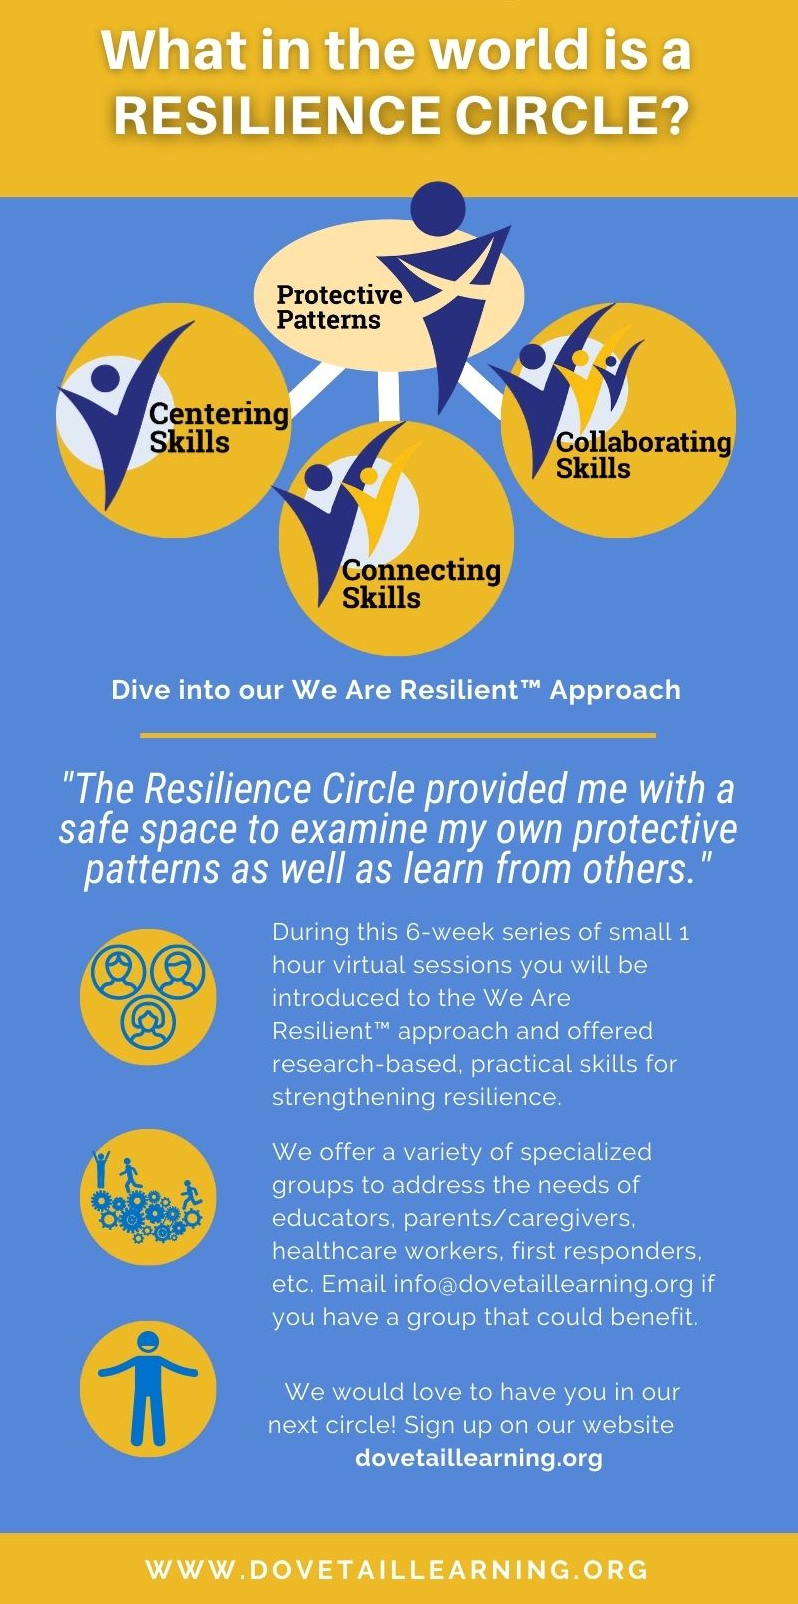 What is a Resilience Circle